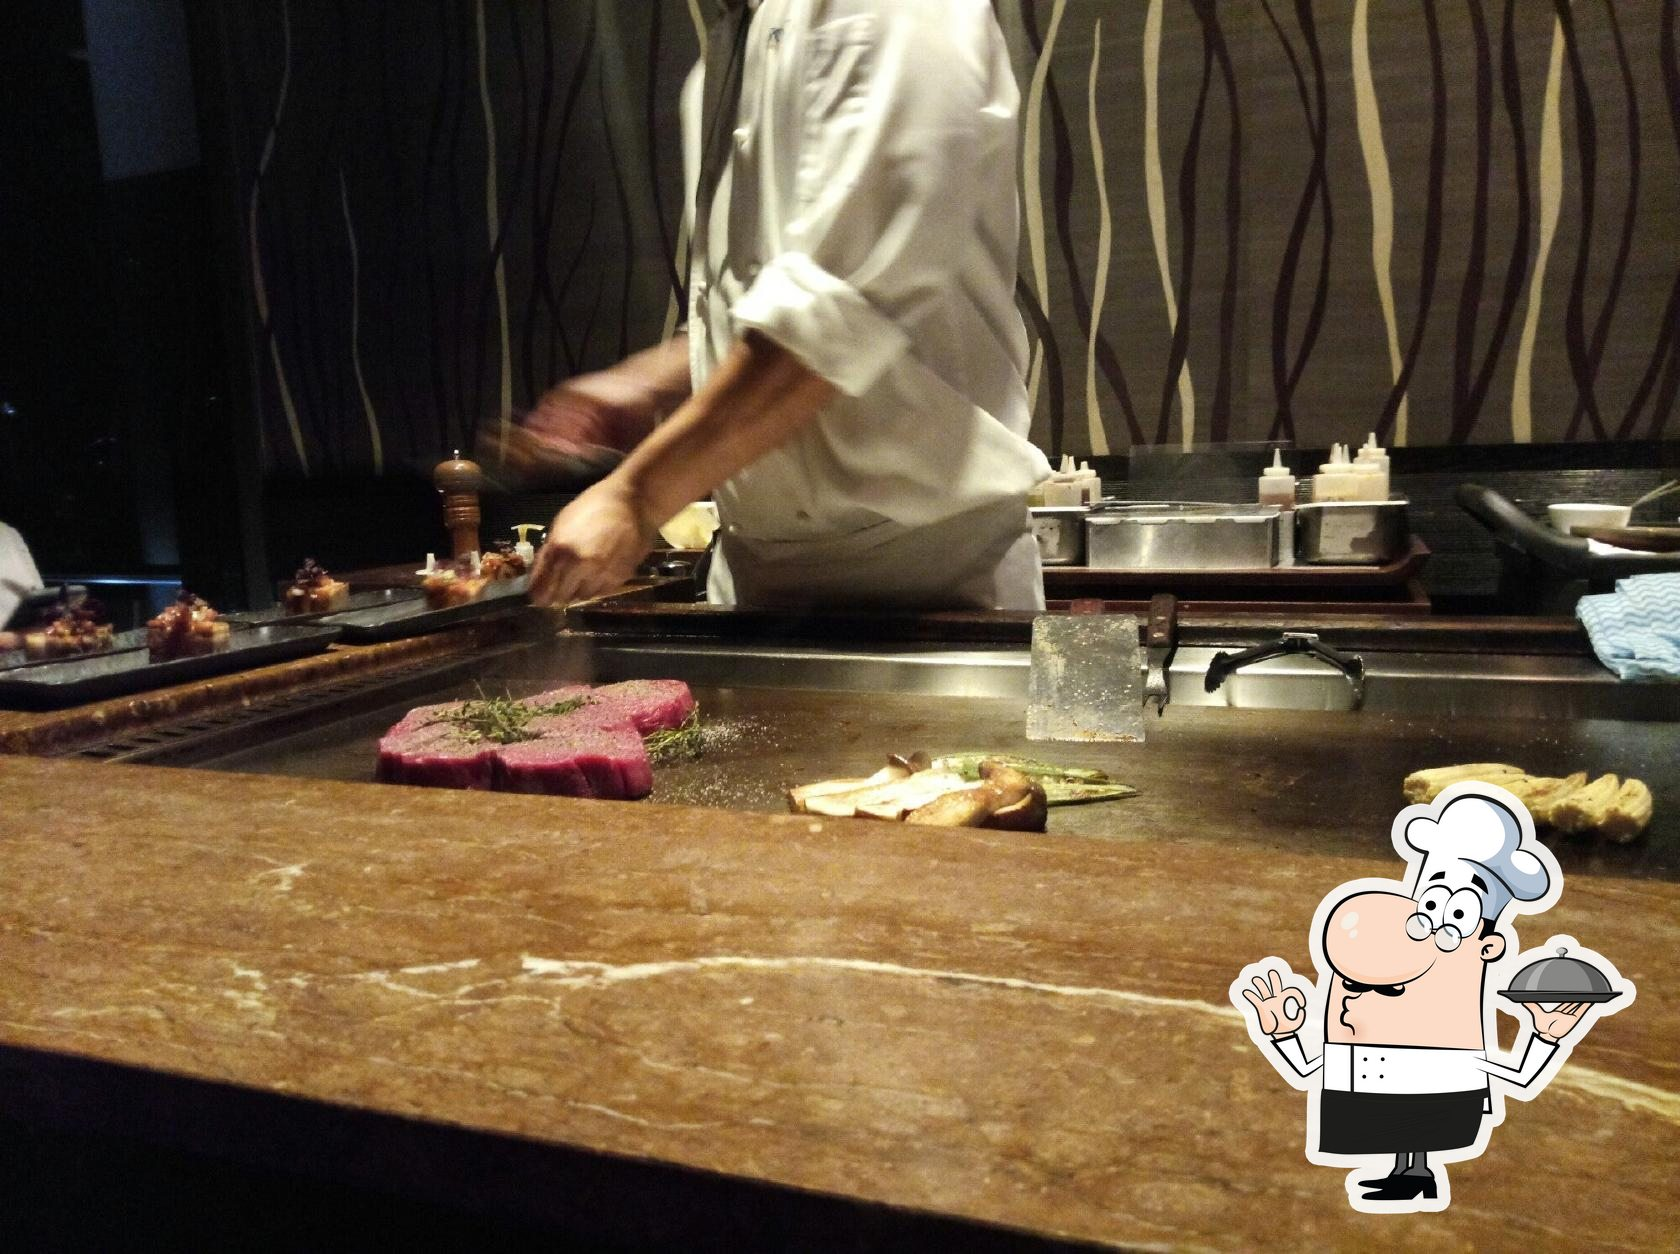 The chef will satisfy the taste of foodies